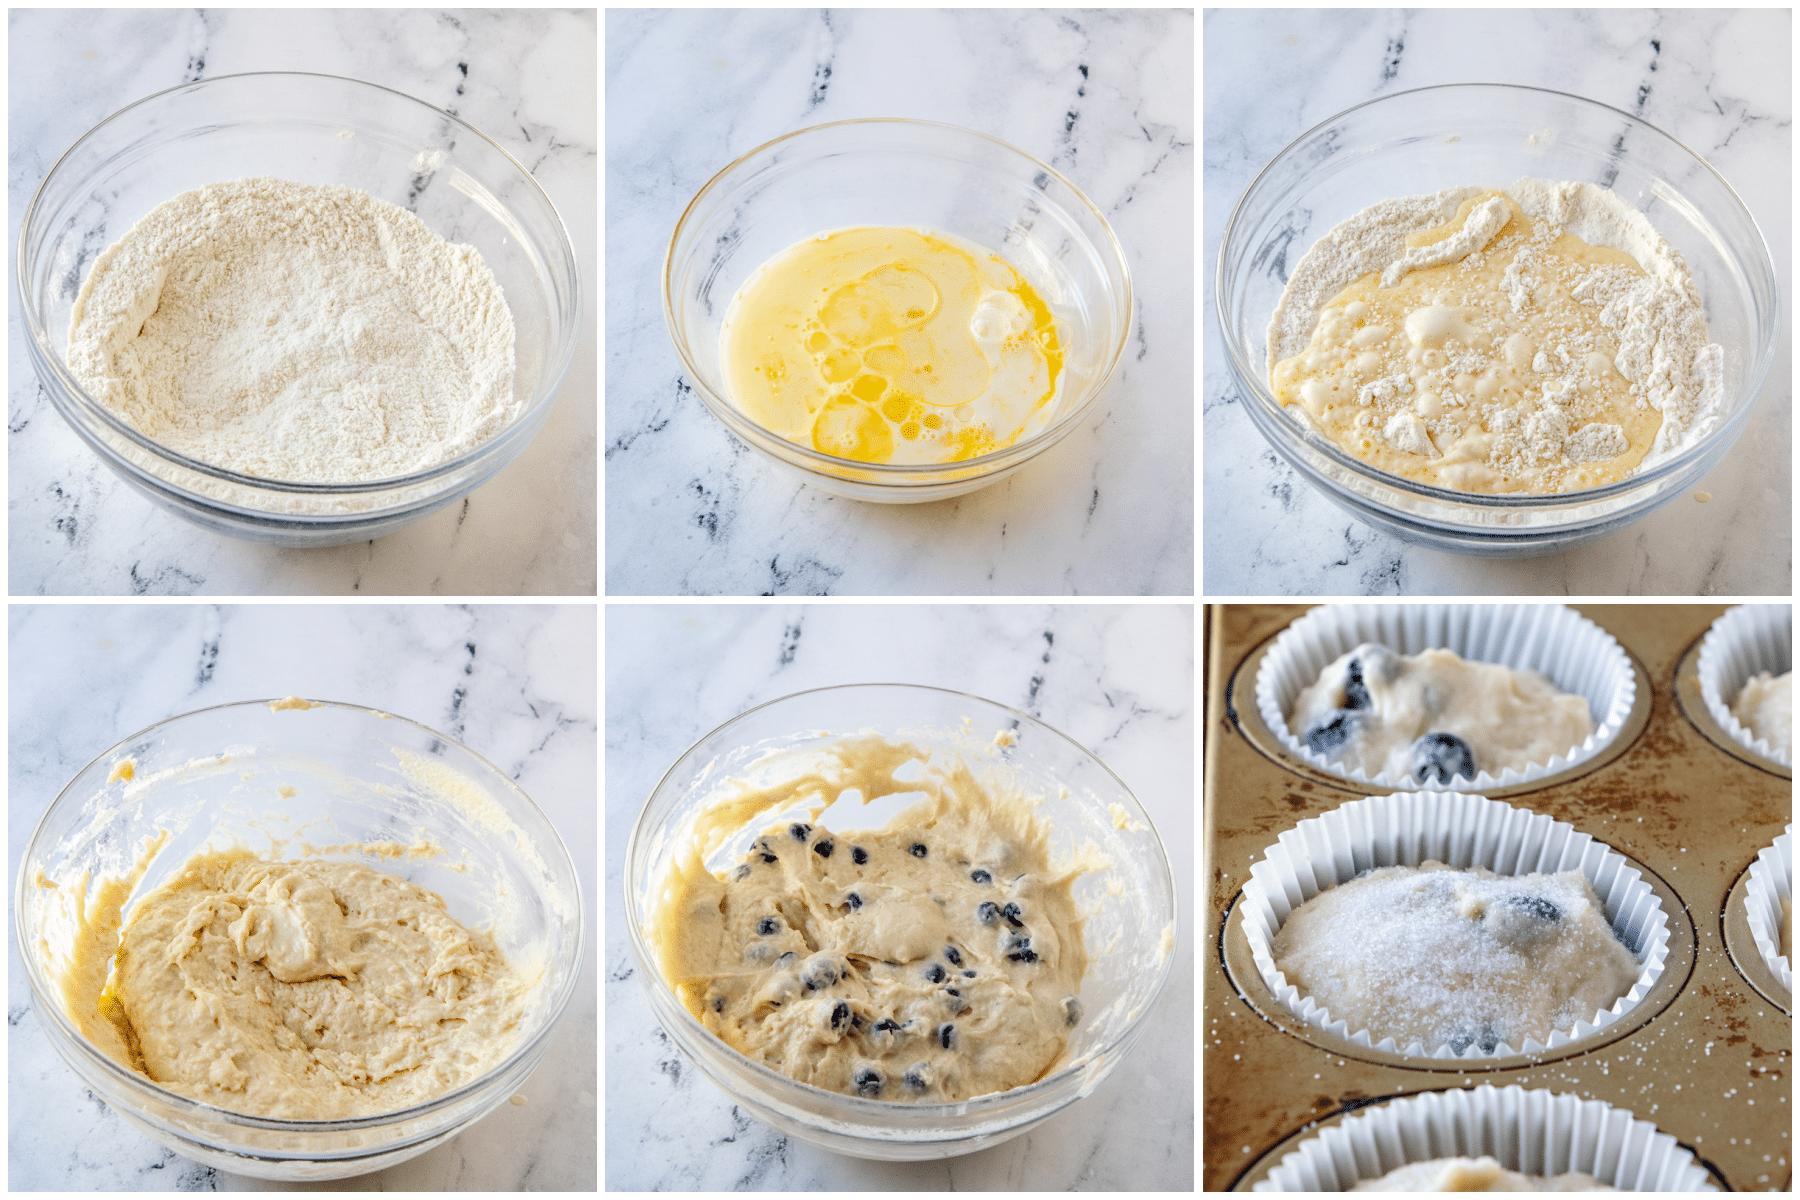 Step by step photos for recipe